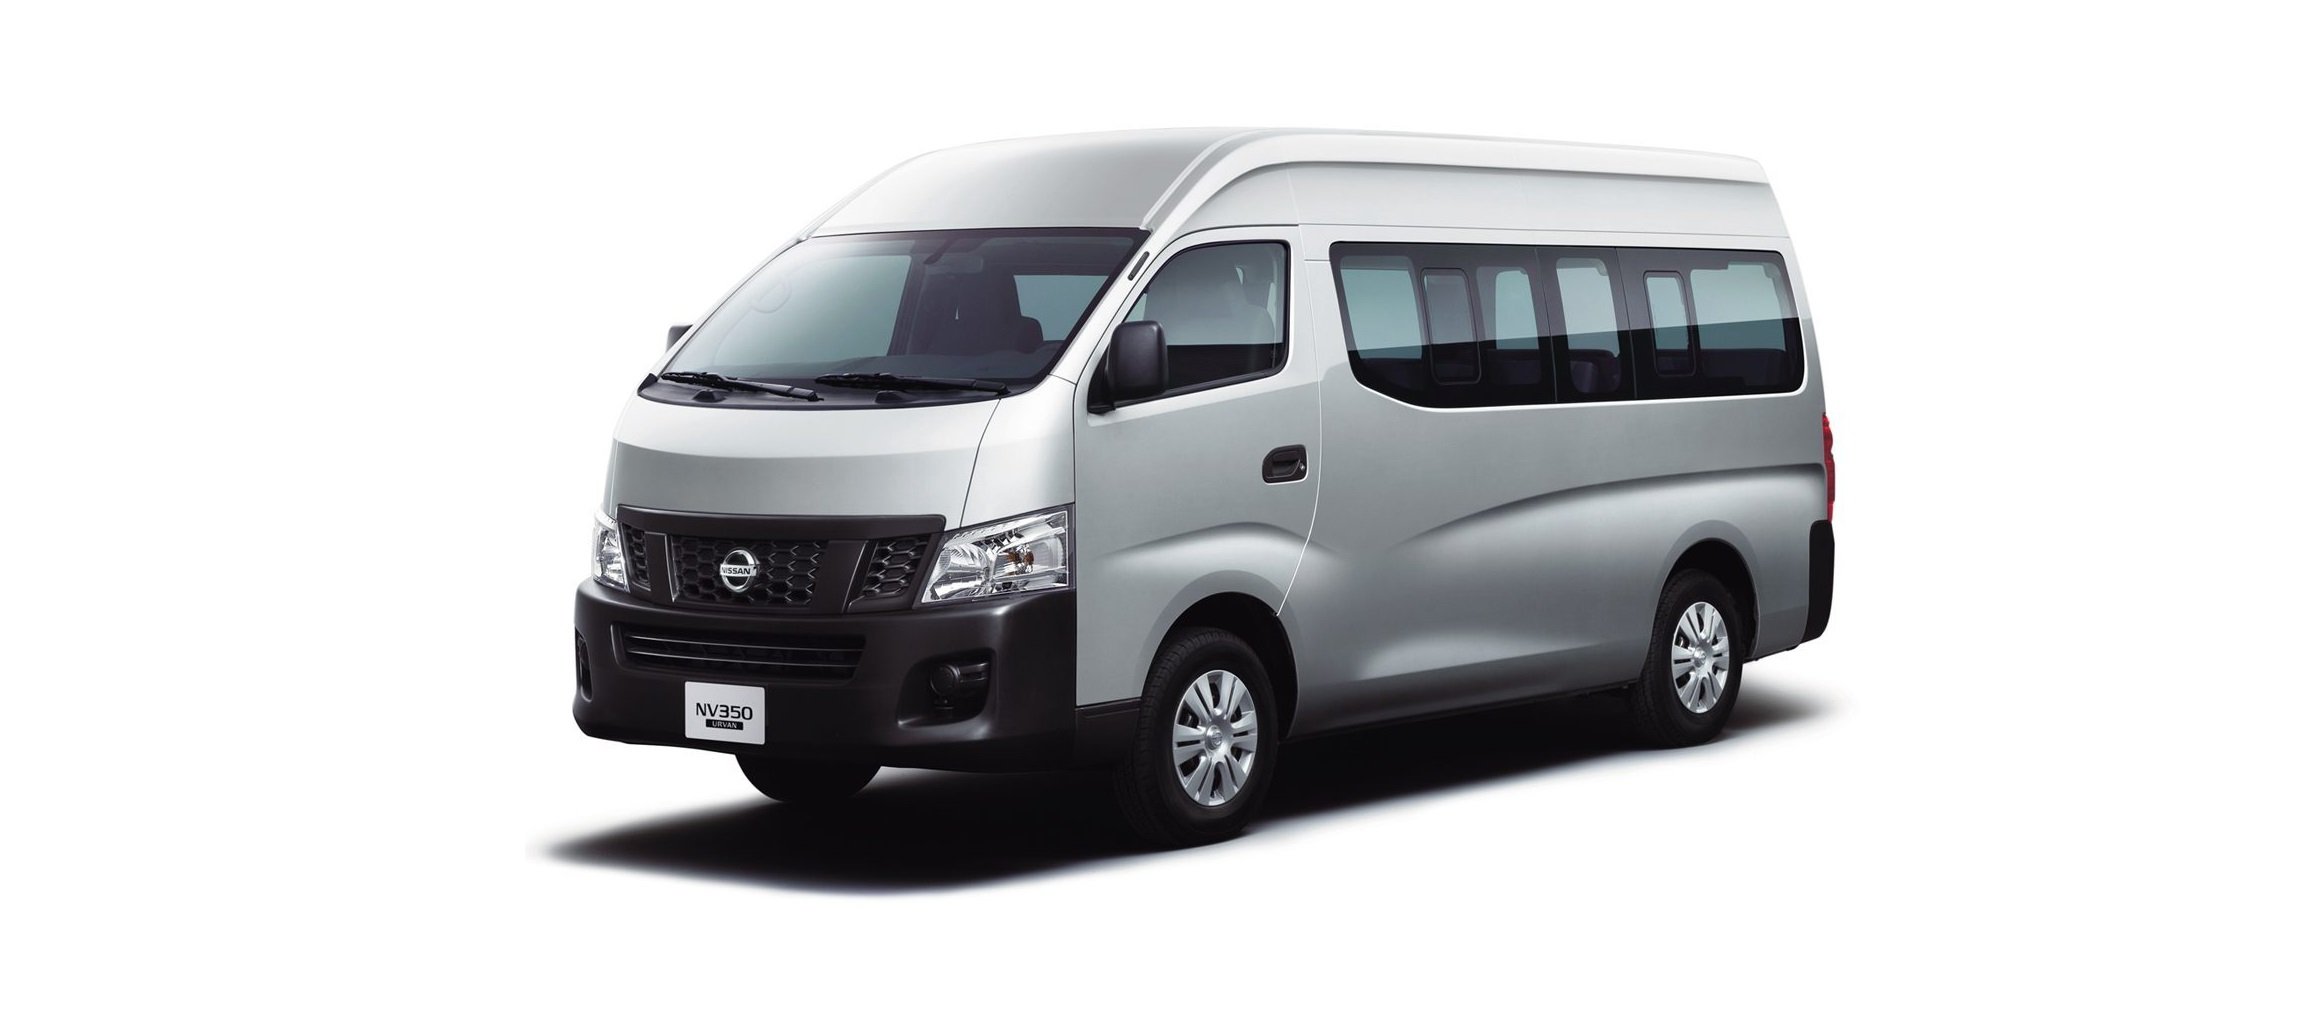 nissan urvan price in uae new nissan urvan photos and specs yallamotor. Black Bedroom Furniture Sets. Home Design Ideas